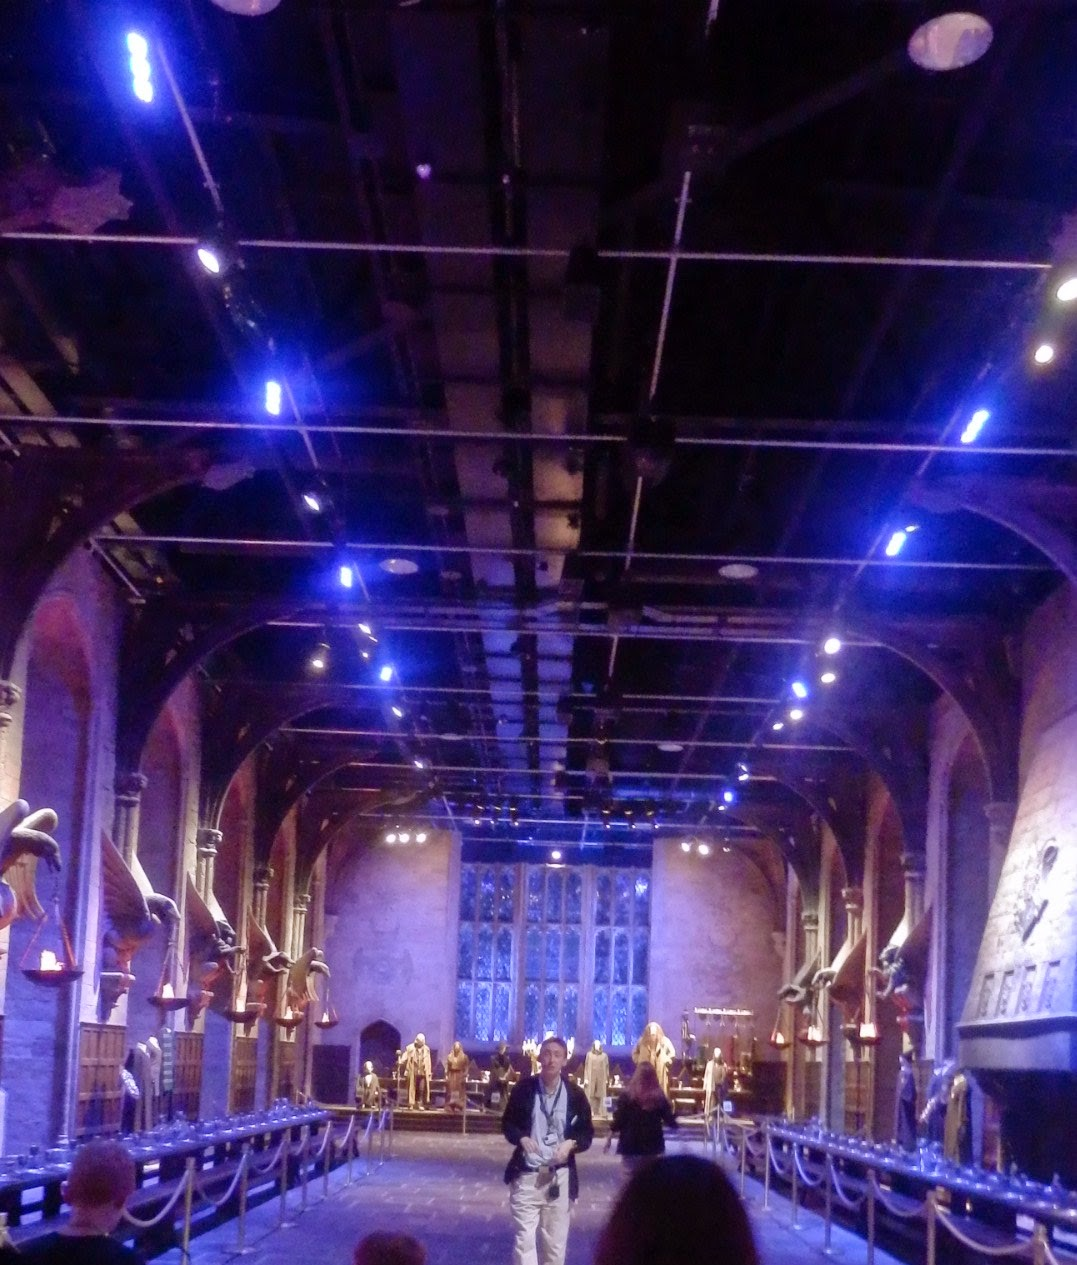 Harry Potter Warner Brothers Studio Tour London